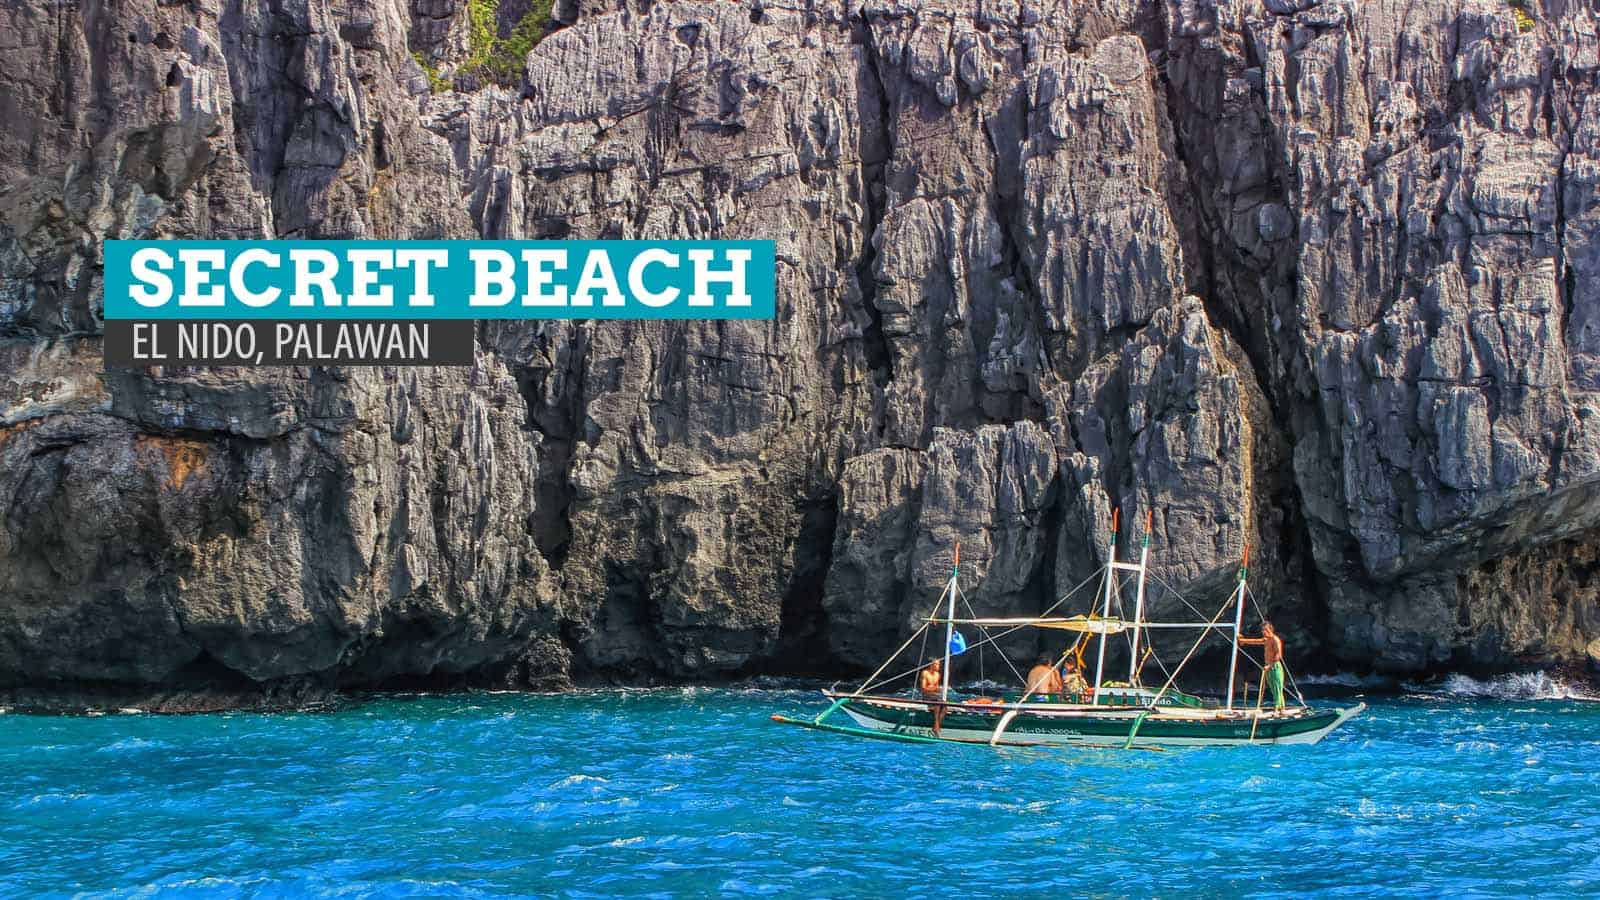 The Secret Beach of Matinloc Island: El Nido, Palawan, Philippines